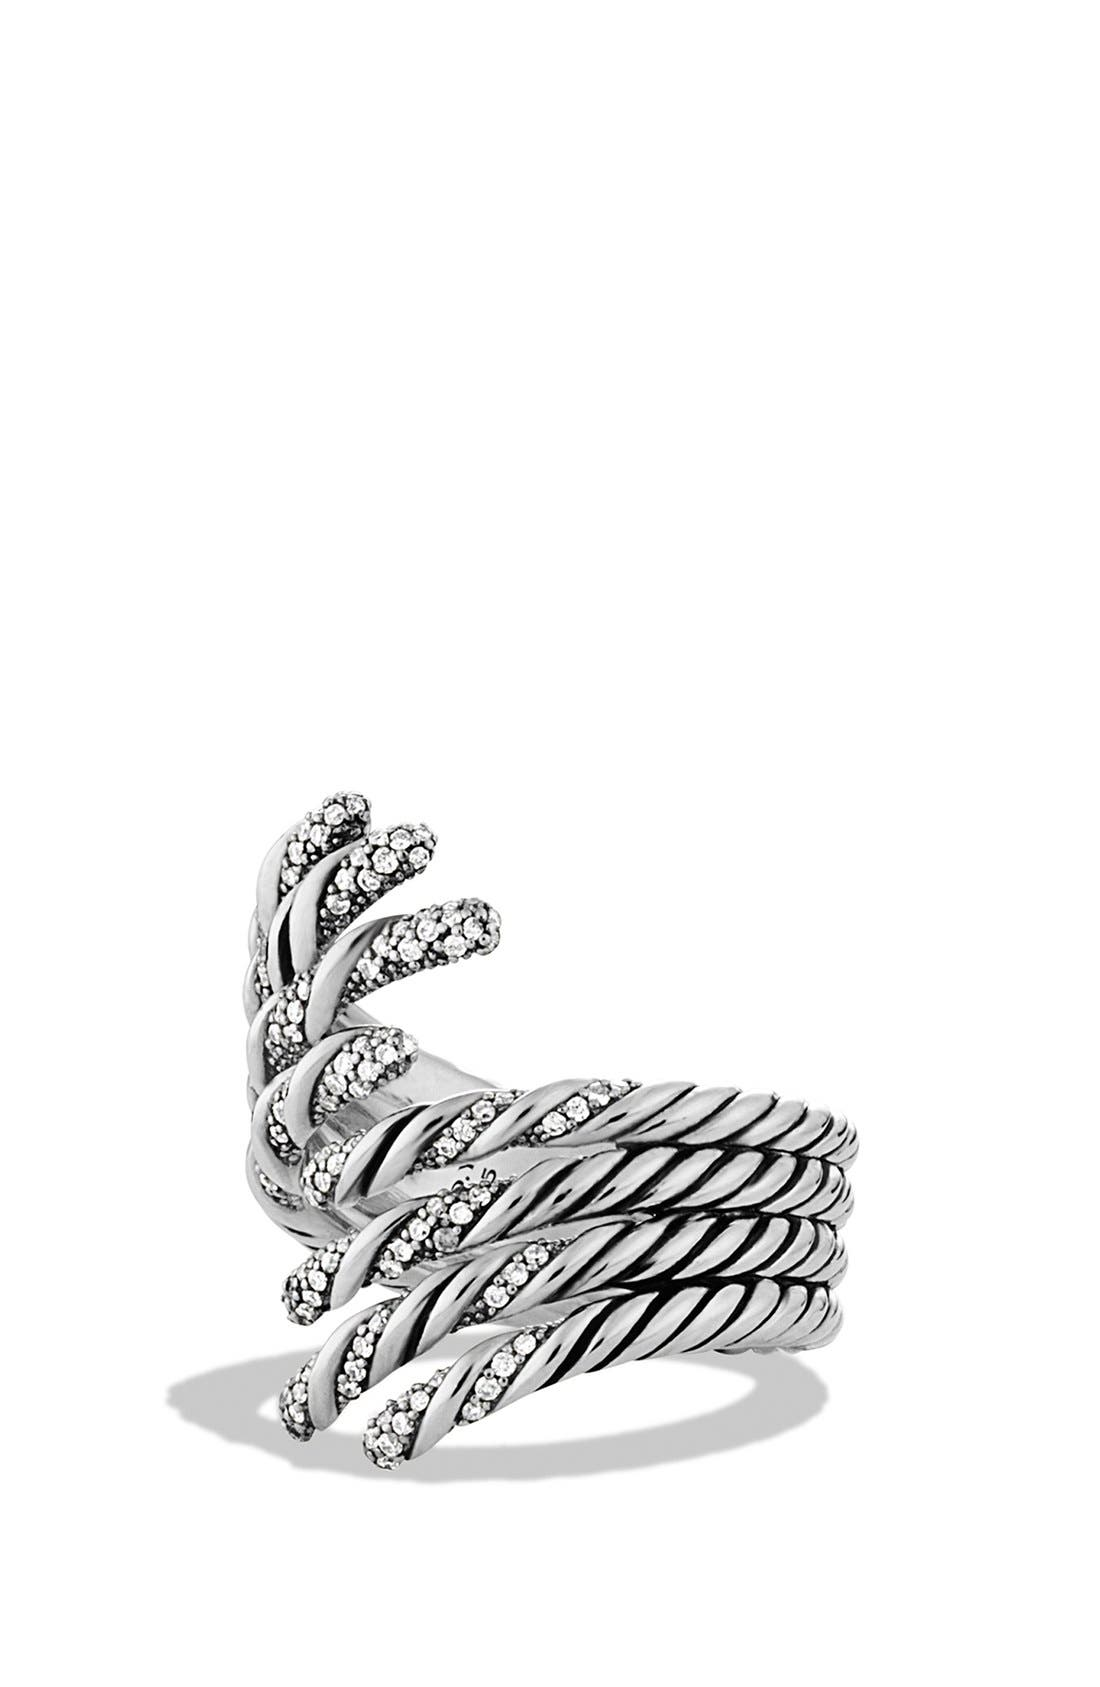 Main Image - David Yurman 'Willow' Open Four-Row Ring with Diamonds